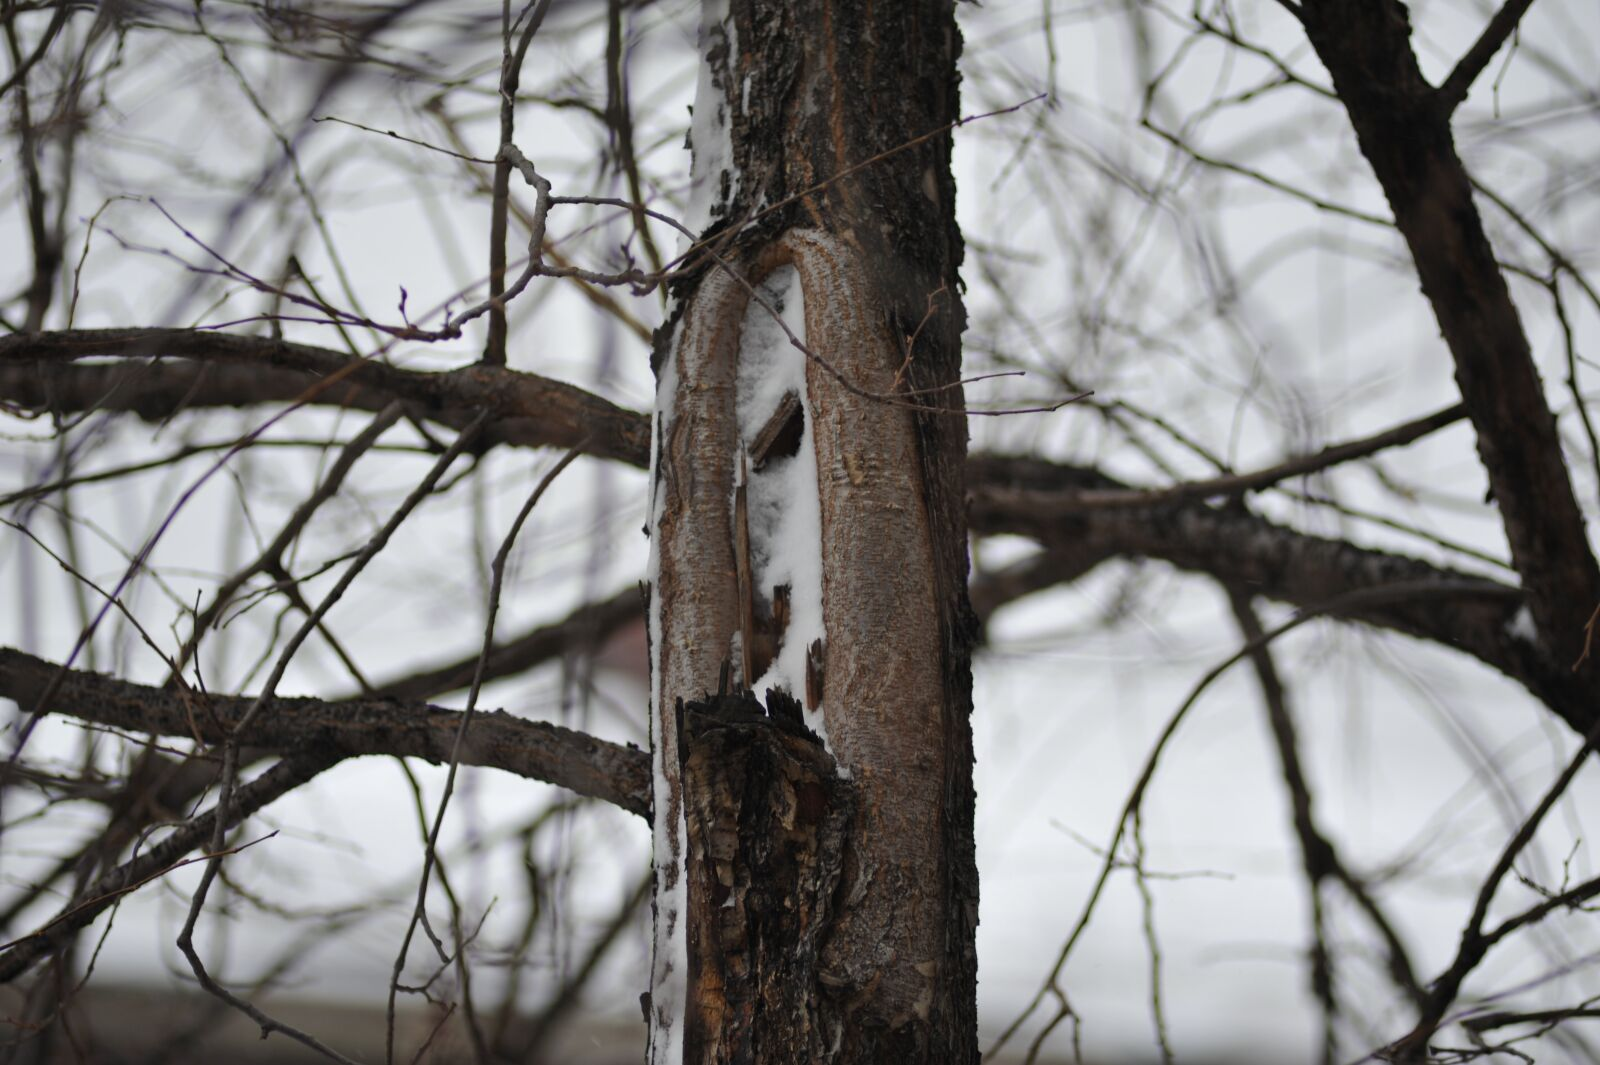 """Nikon D700 sample photo. """"Winter, forest, branch"""" photography"""